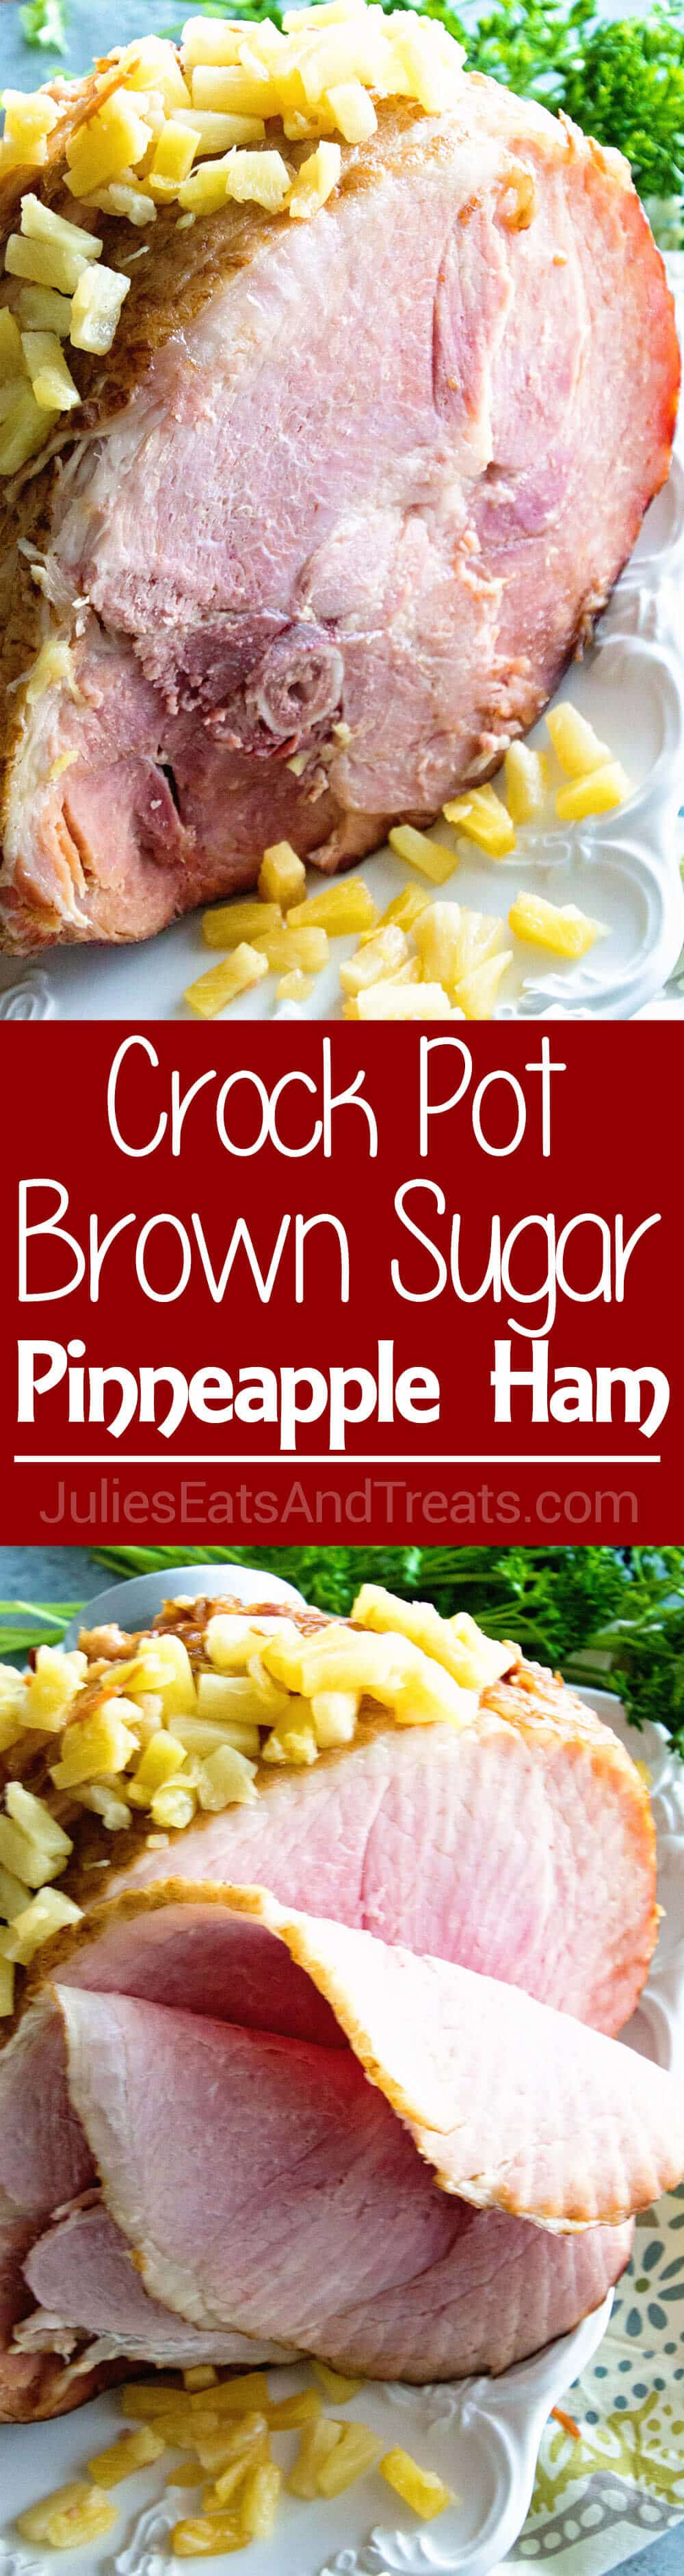 Crock Pot Brown Sugar Pineapple Ham ~  Savory Ham with a Brown Sugar Glaze and Pineapple Slow Cooked and Waiting for You When You Get Home!